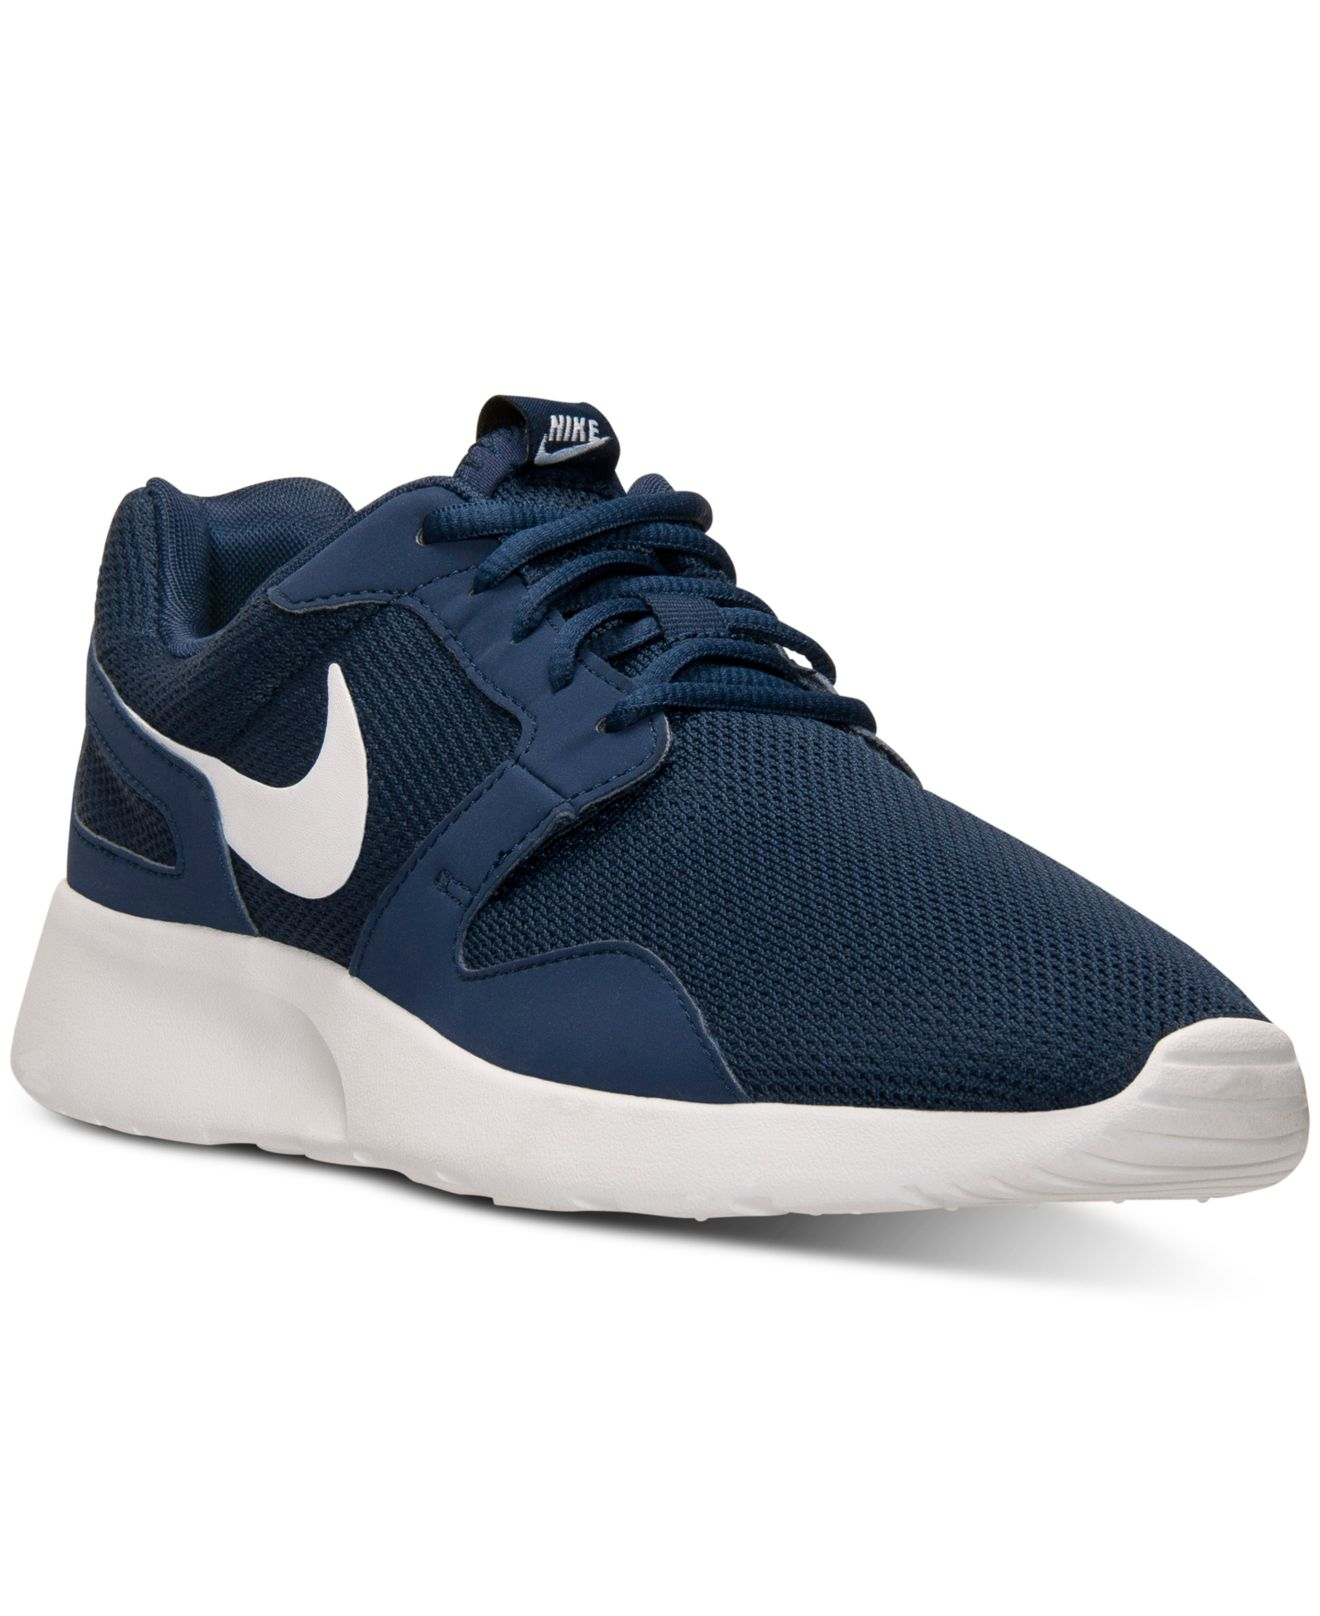 Lyst - Nike Men's Kaishi Casual Sneakers From Finish Line ...